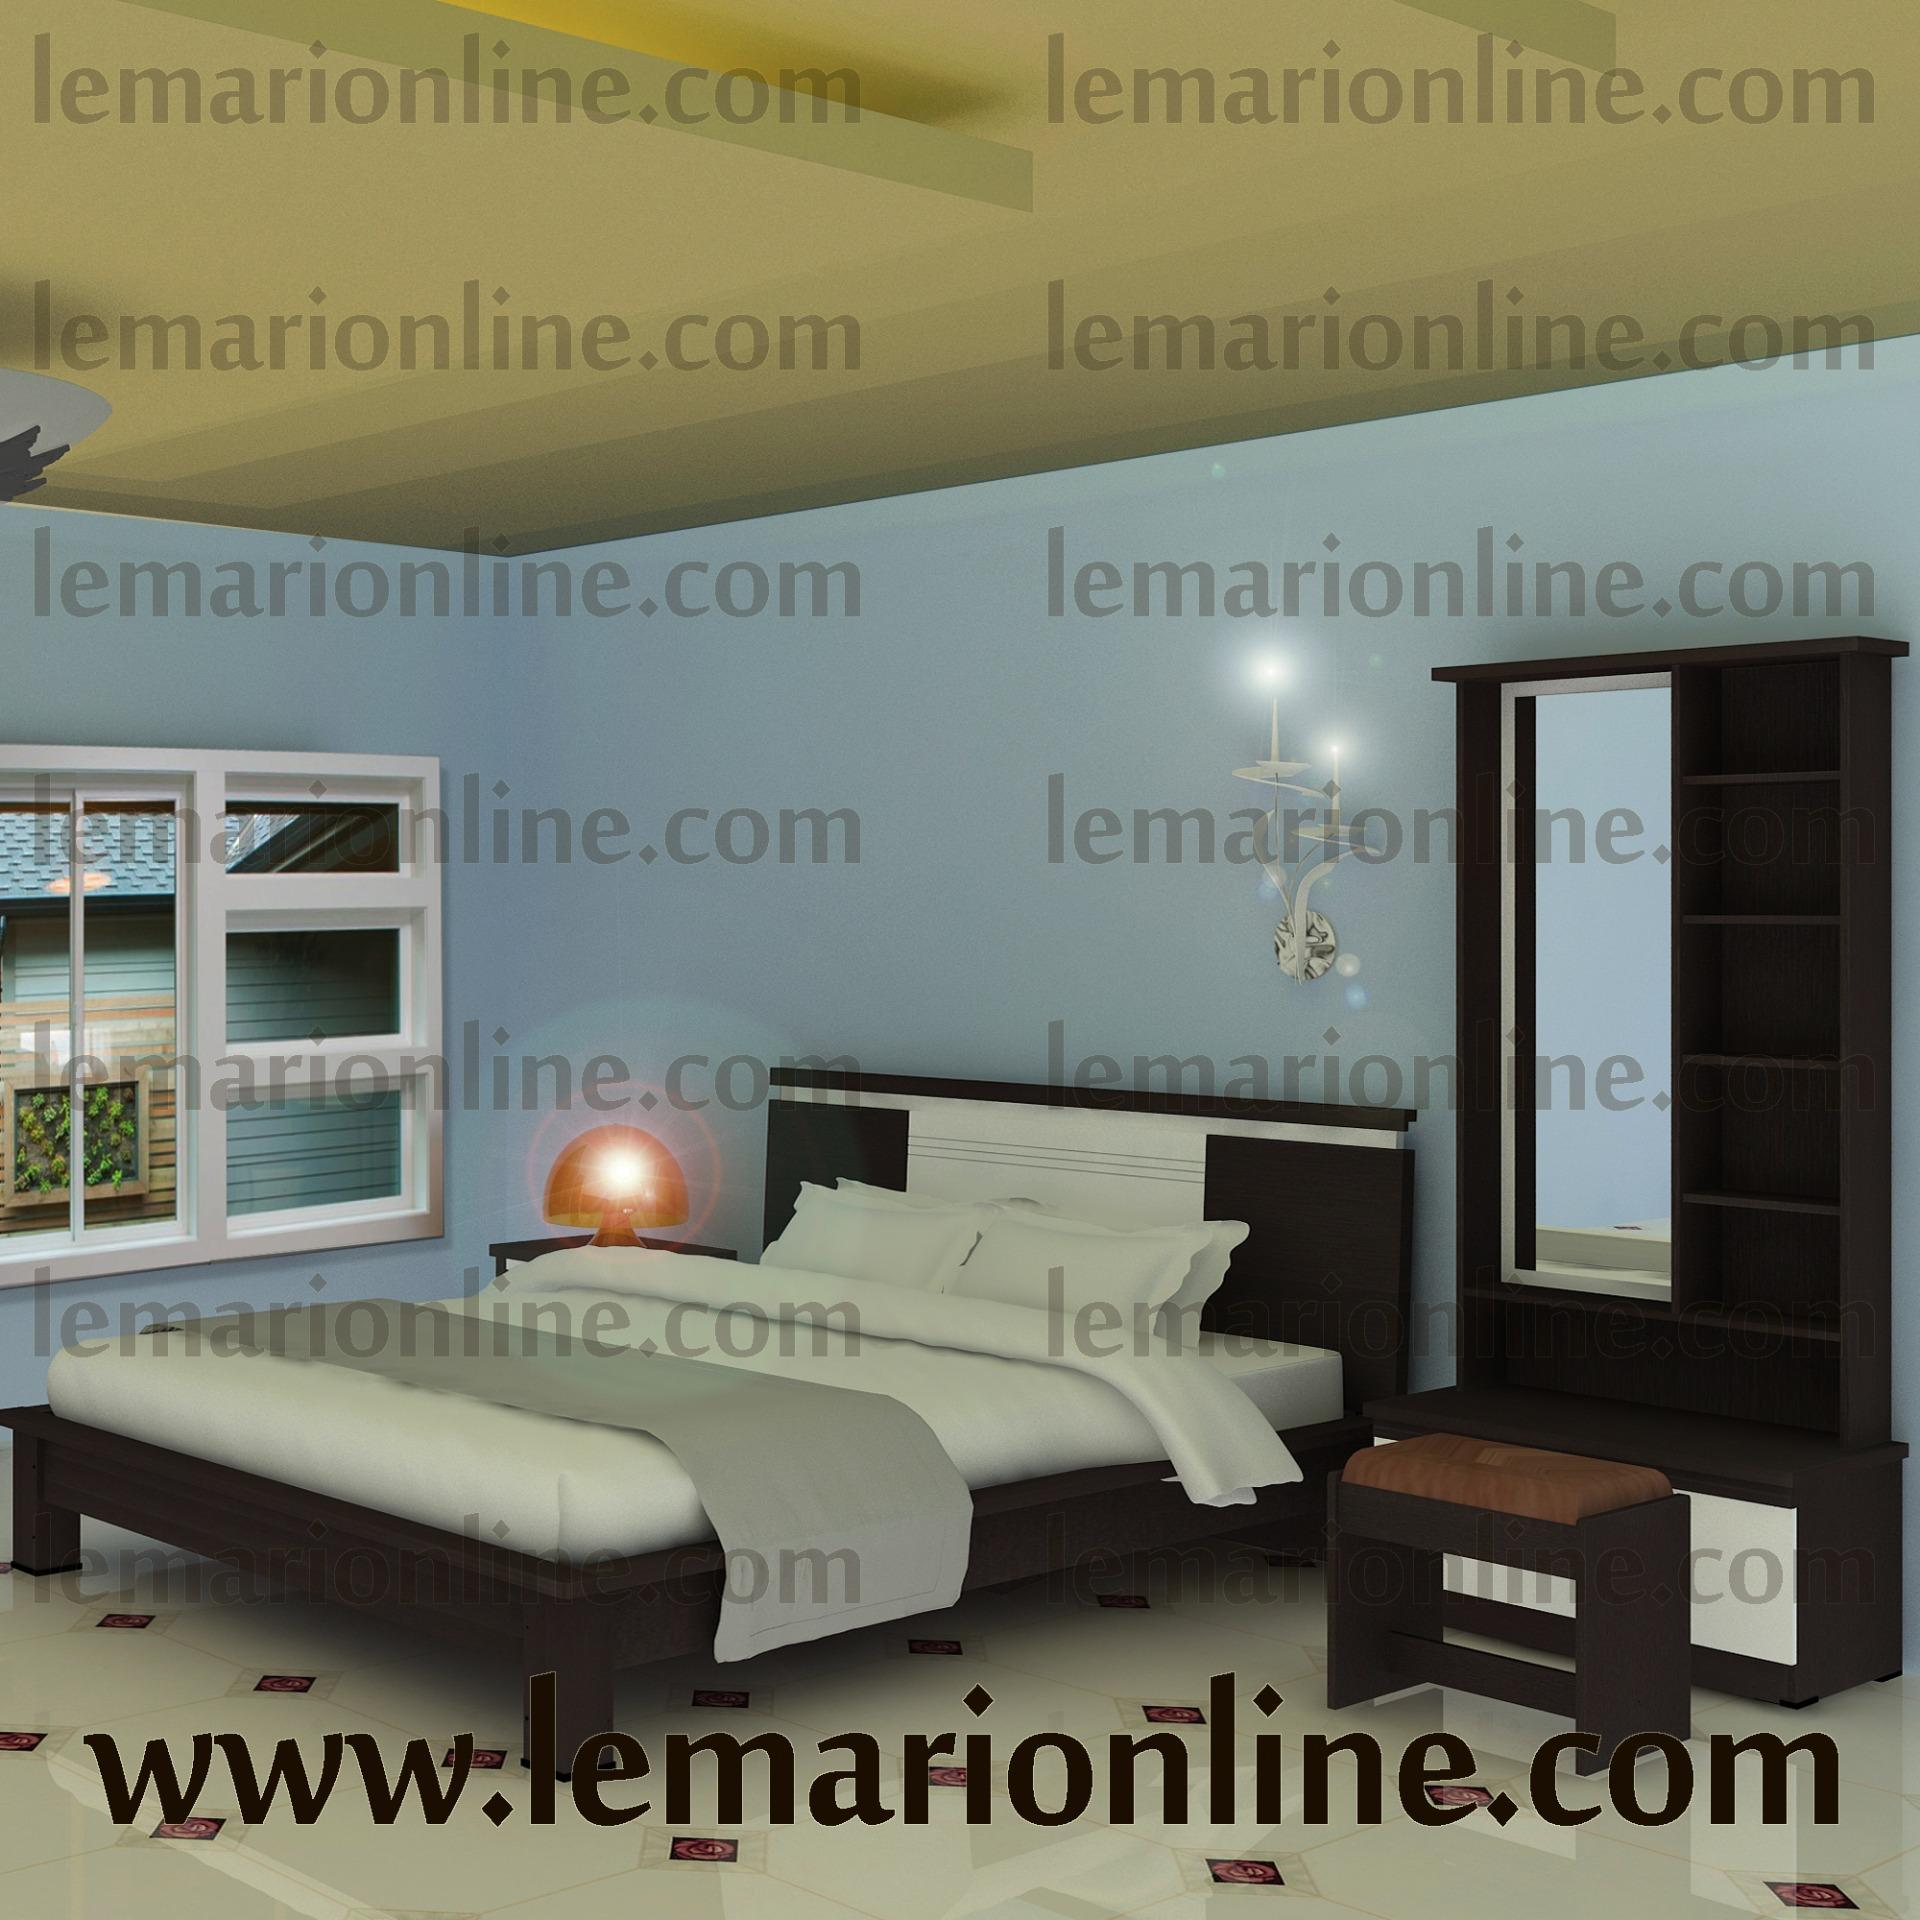 Bedroom Set Avatar (ranjang, Nakas, Dan Meja Rias) By Furniture Minimalis.